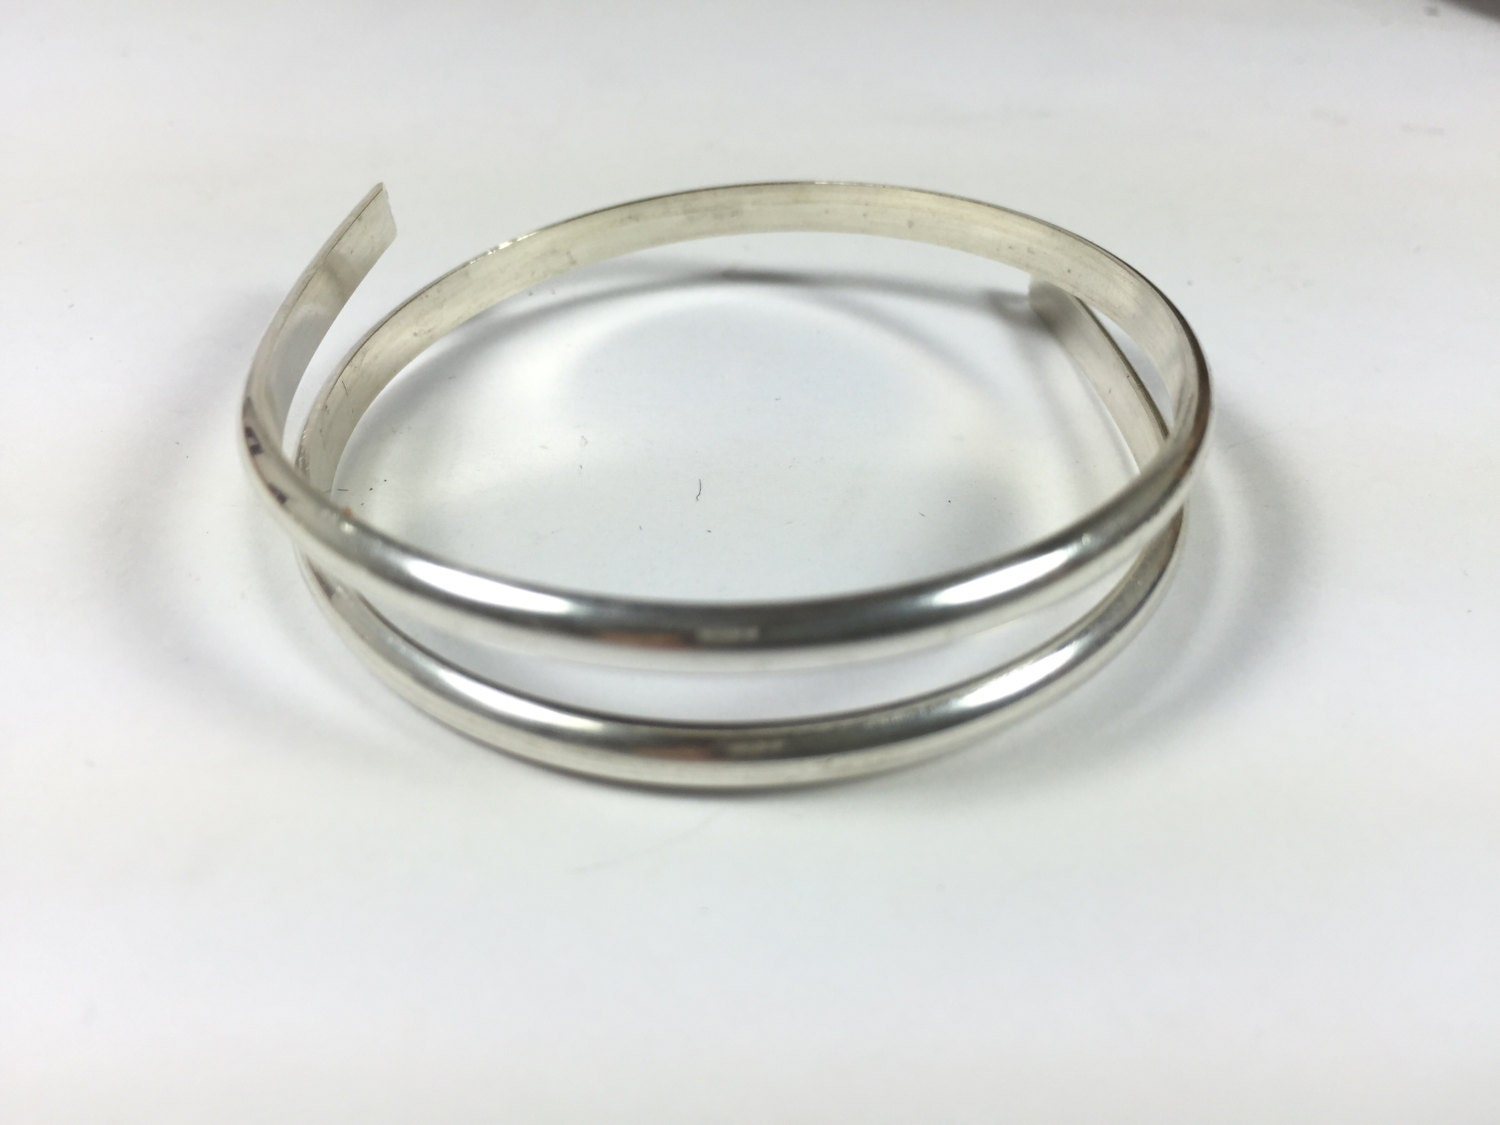 1 foot of 6 gauge half Round sterling silver wire, for cuffs, rings ...